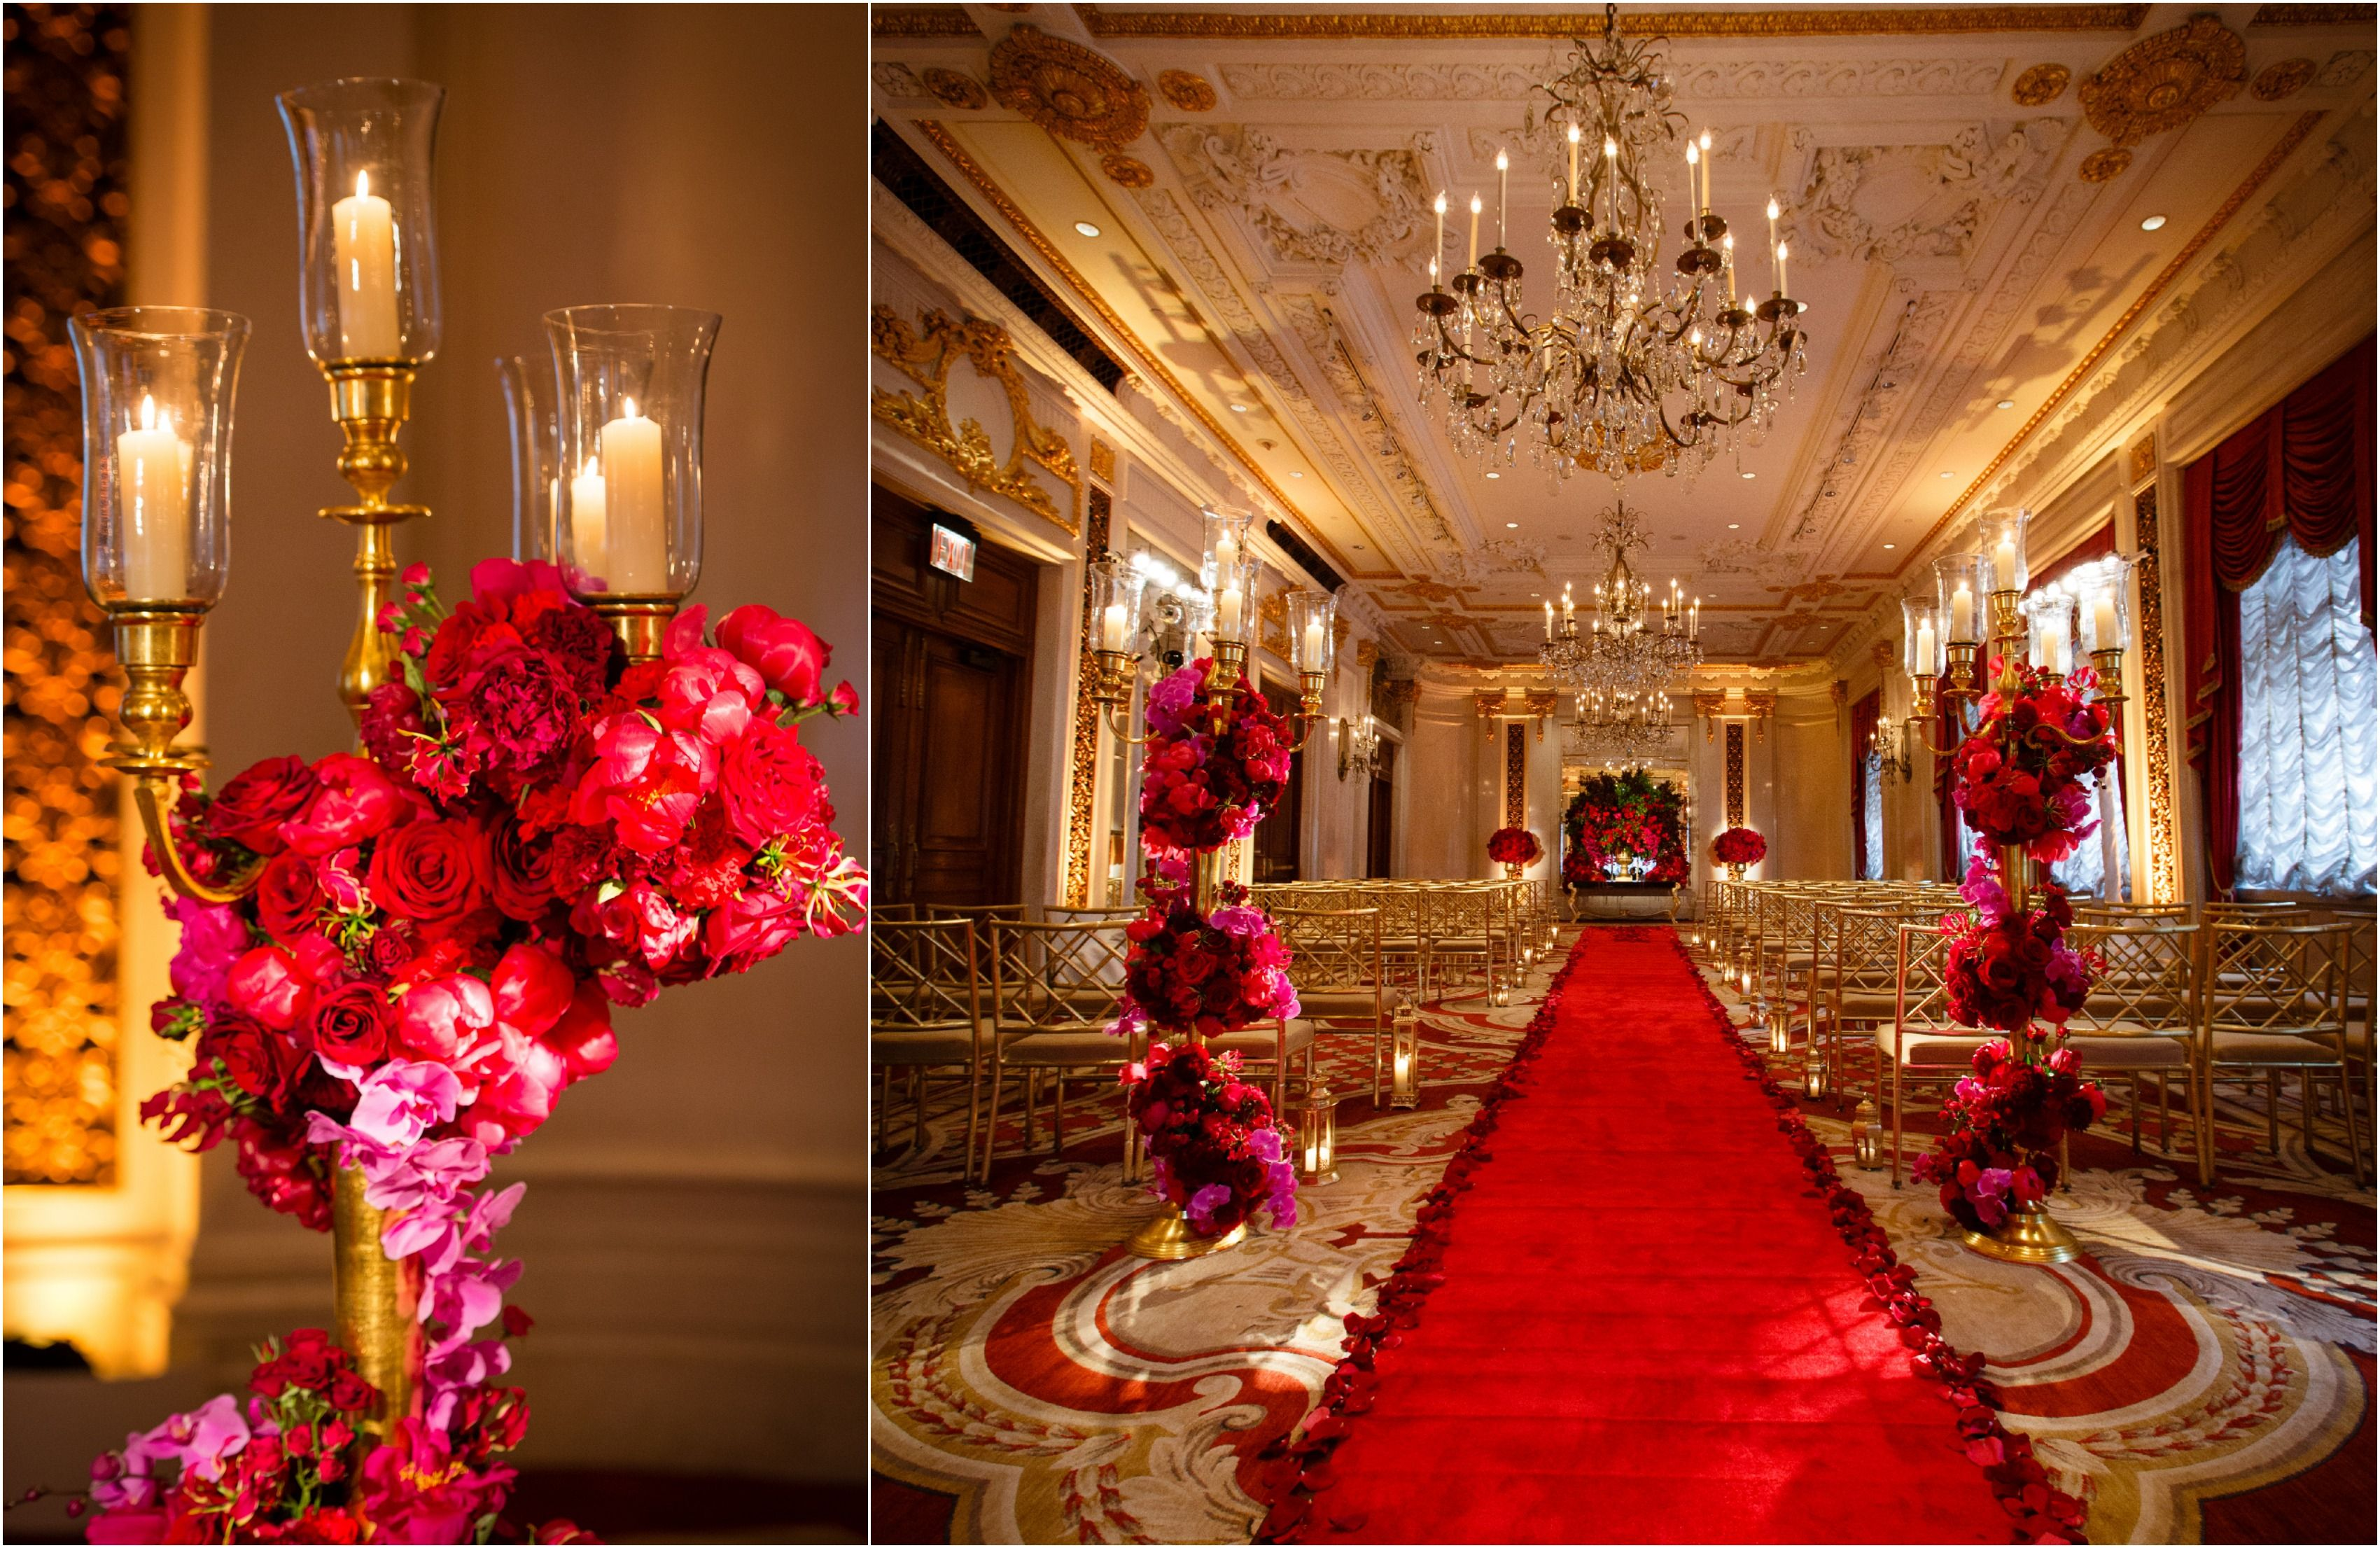 St regis nyc wedding pink red flowers roses bouwuet purple orchid passion filled new york wedding at the st junglespirit Gallery